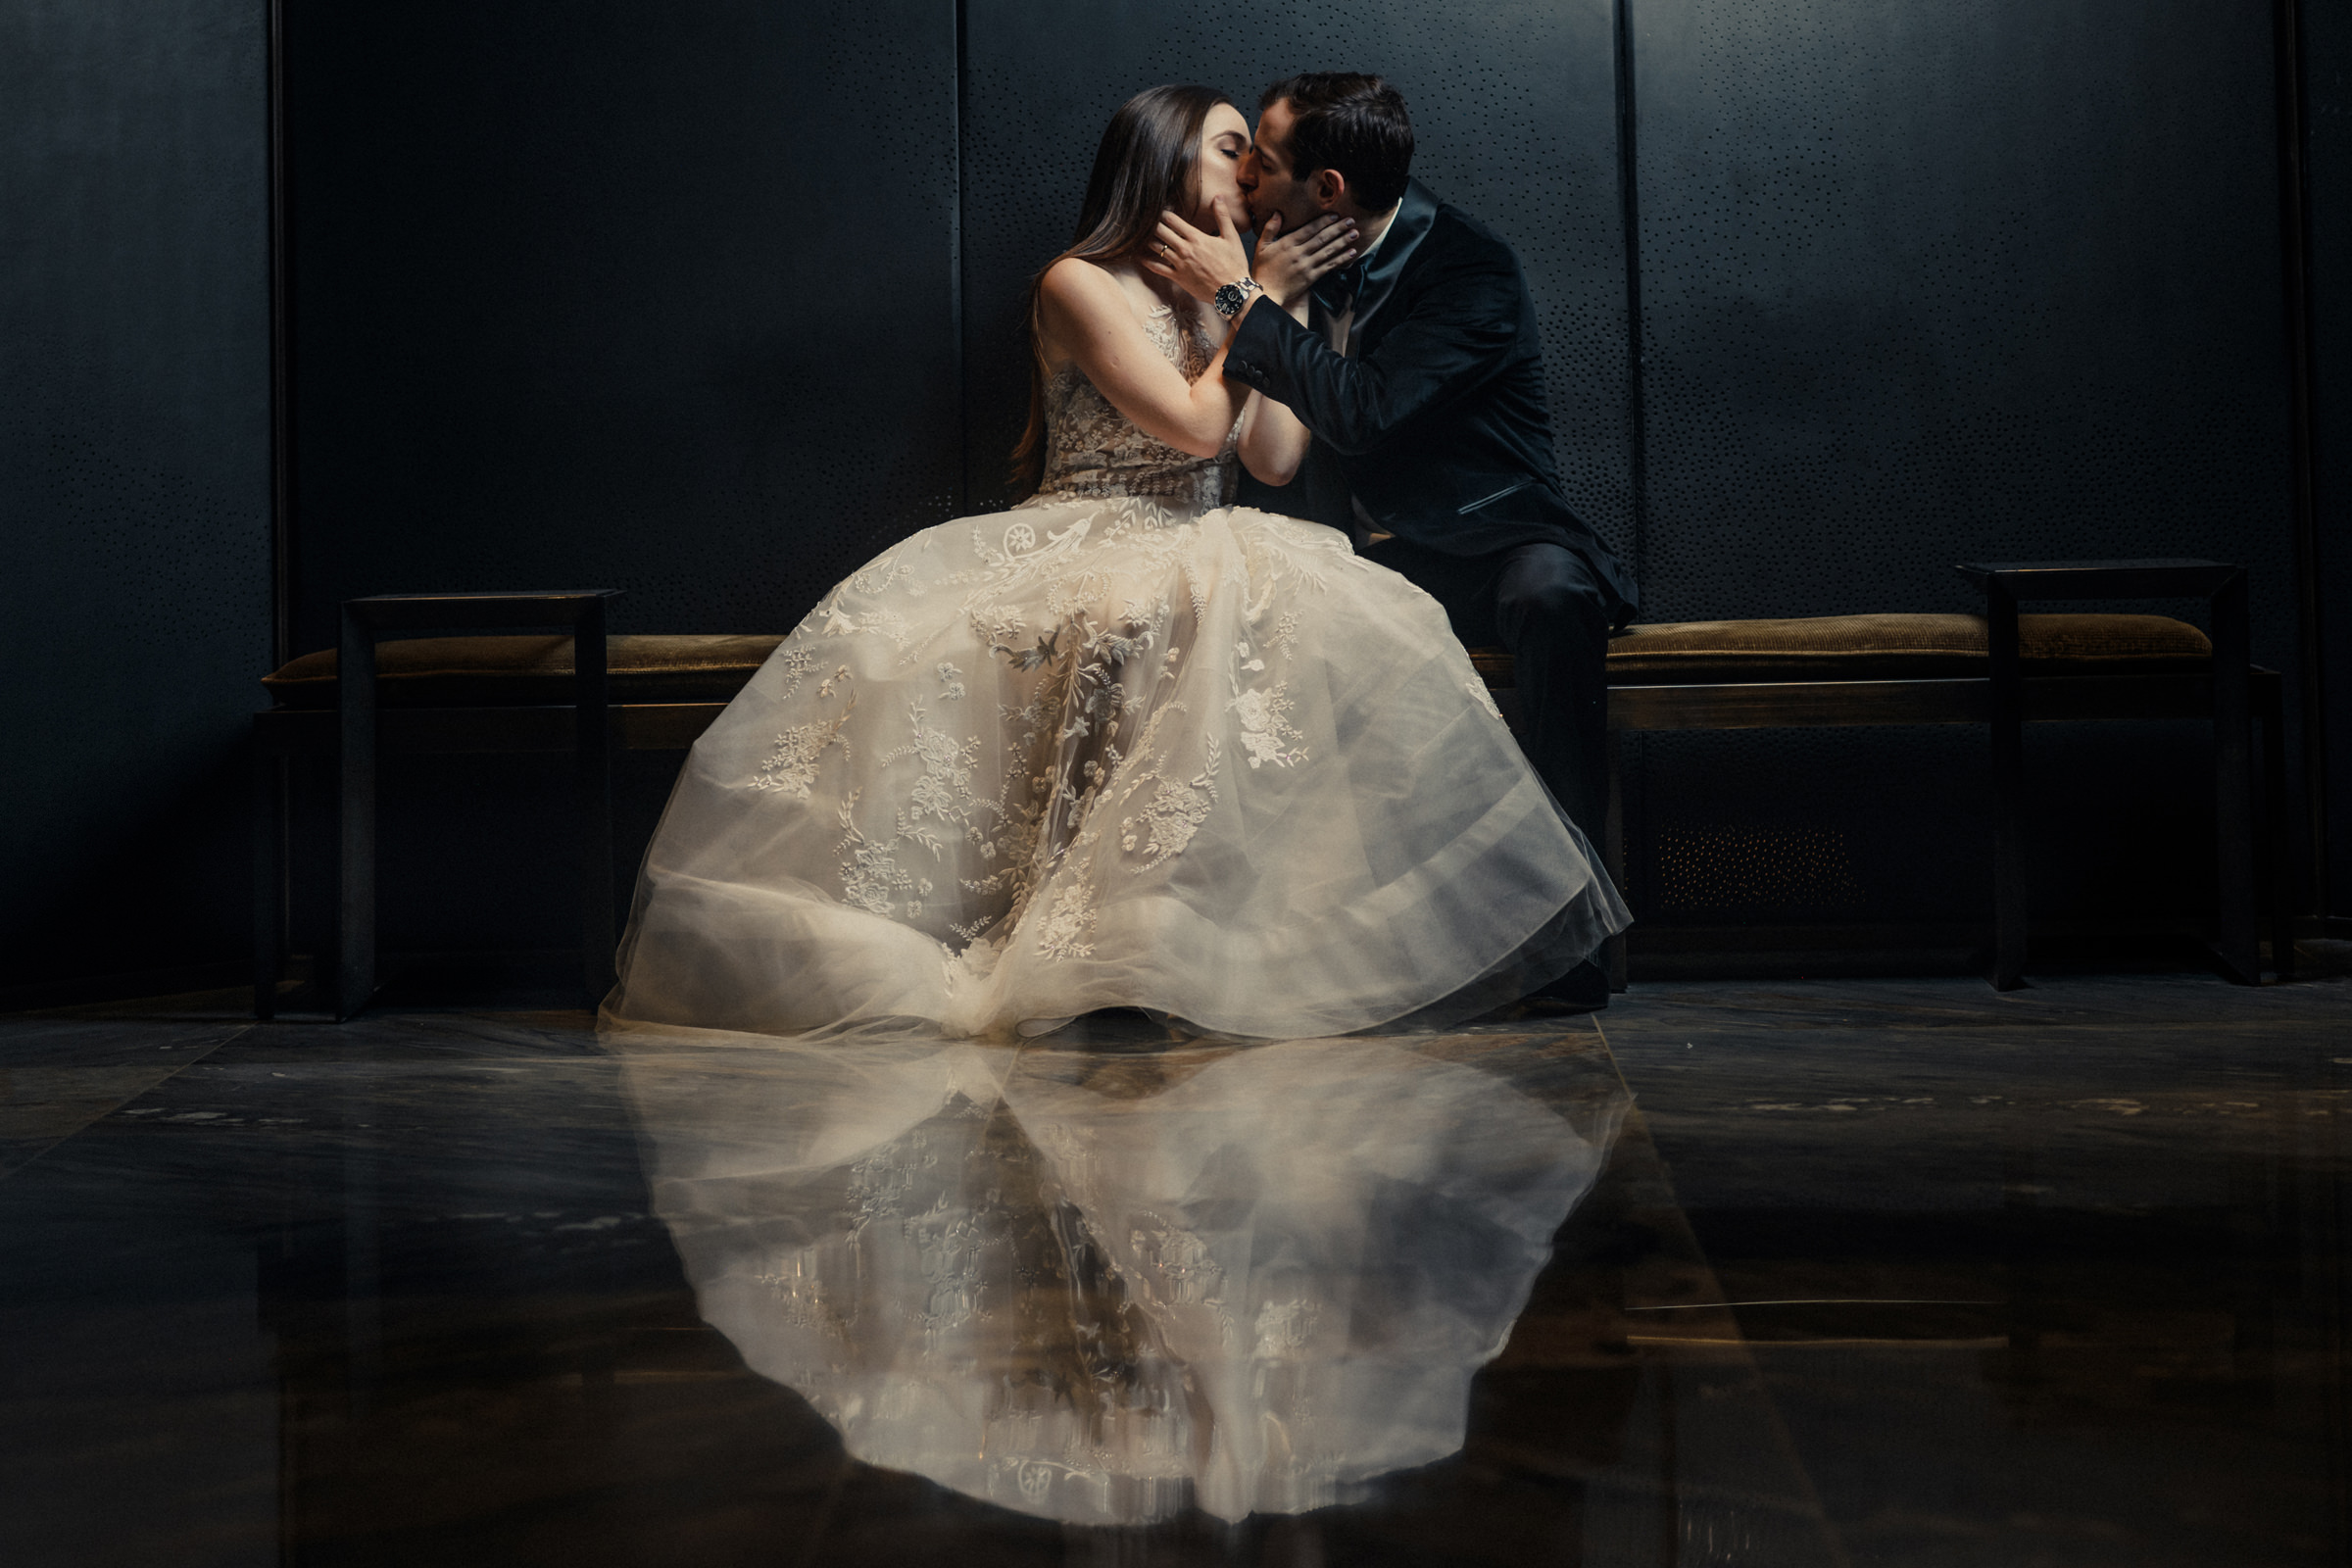 Couple kissing with bride's dress reflected in floor - Photo by El Marco Rojo